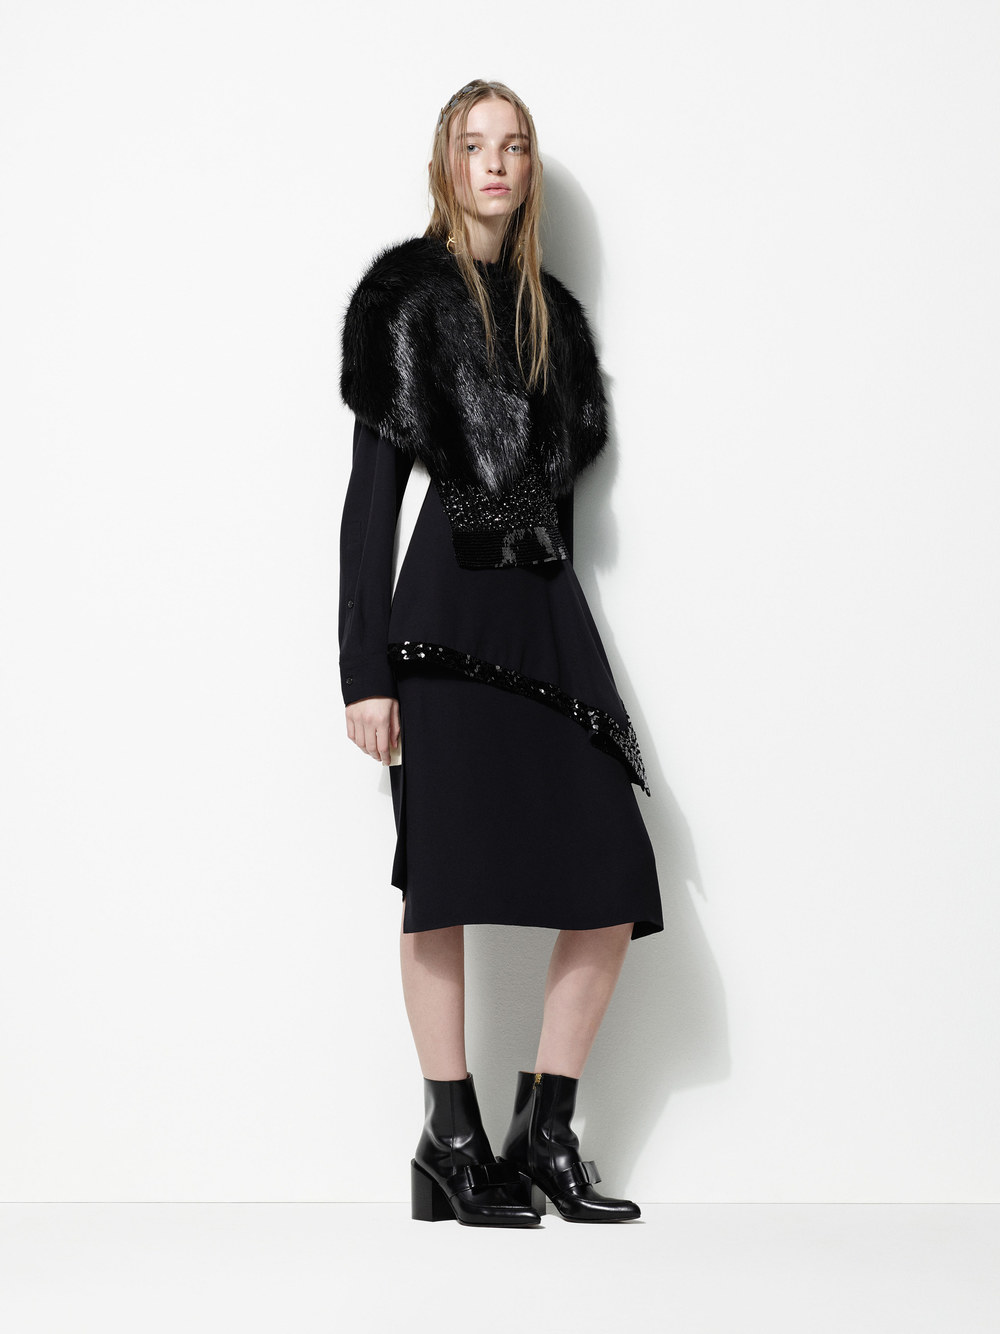 marni-pre-fall-2016-lookbook-24.jpg